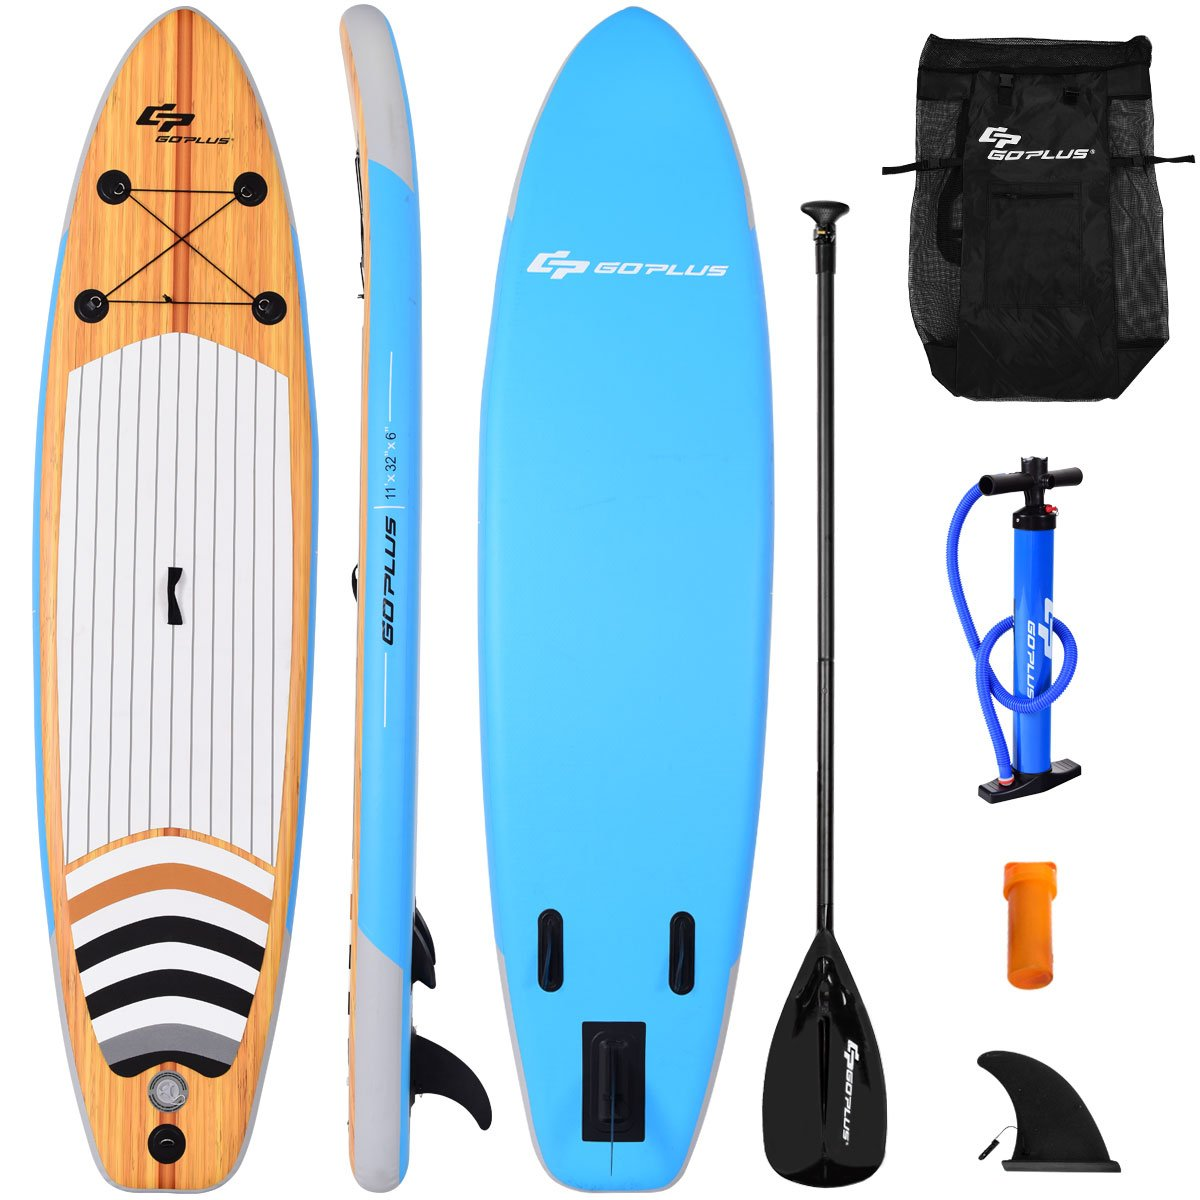 SPSUPE 11ft Stand up Paddle Board, Inflatable Surfboard with Retractable Paddle, Body Surfing Board, Pump Included, Removable Center Fin, Wax Free, Ideal SUP Board for Beginners, Teens, and Adults